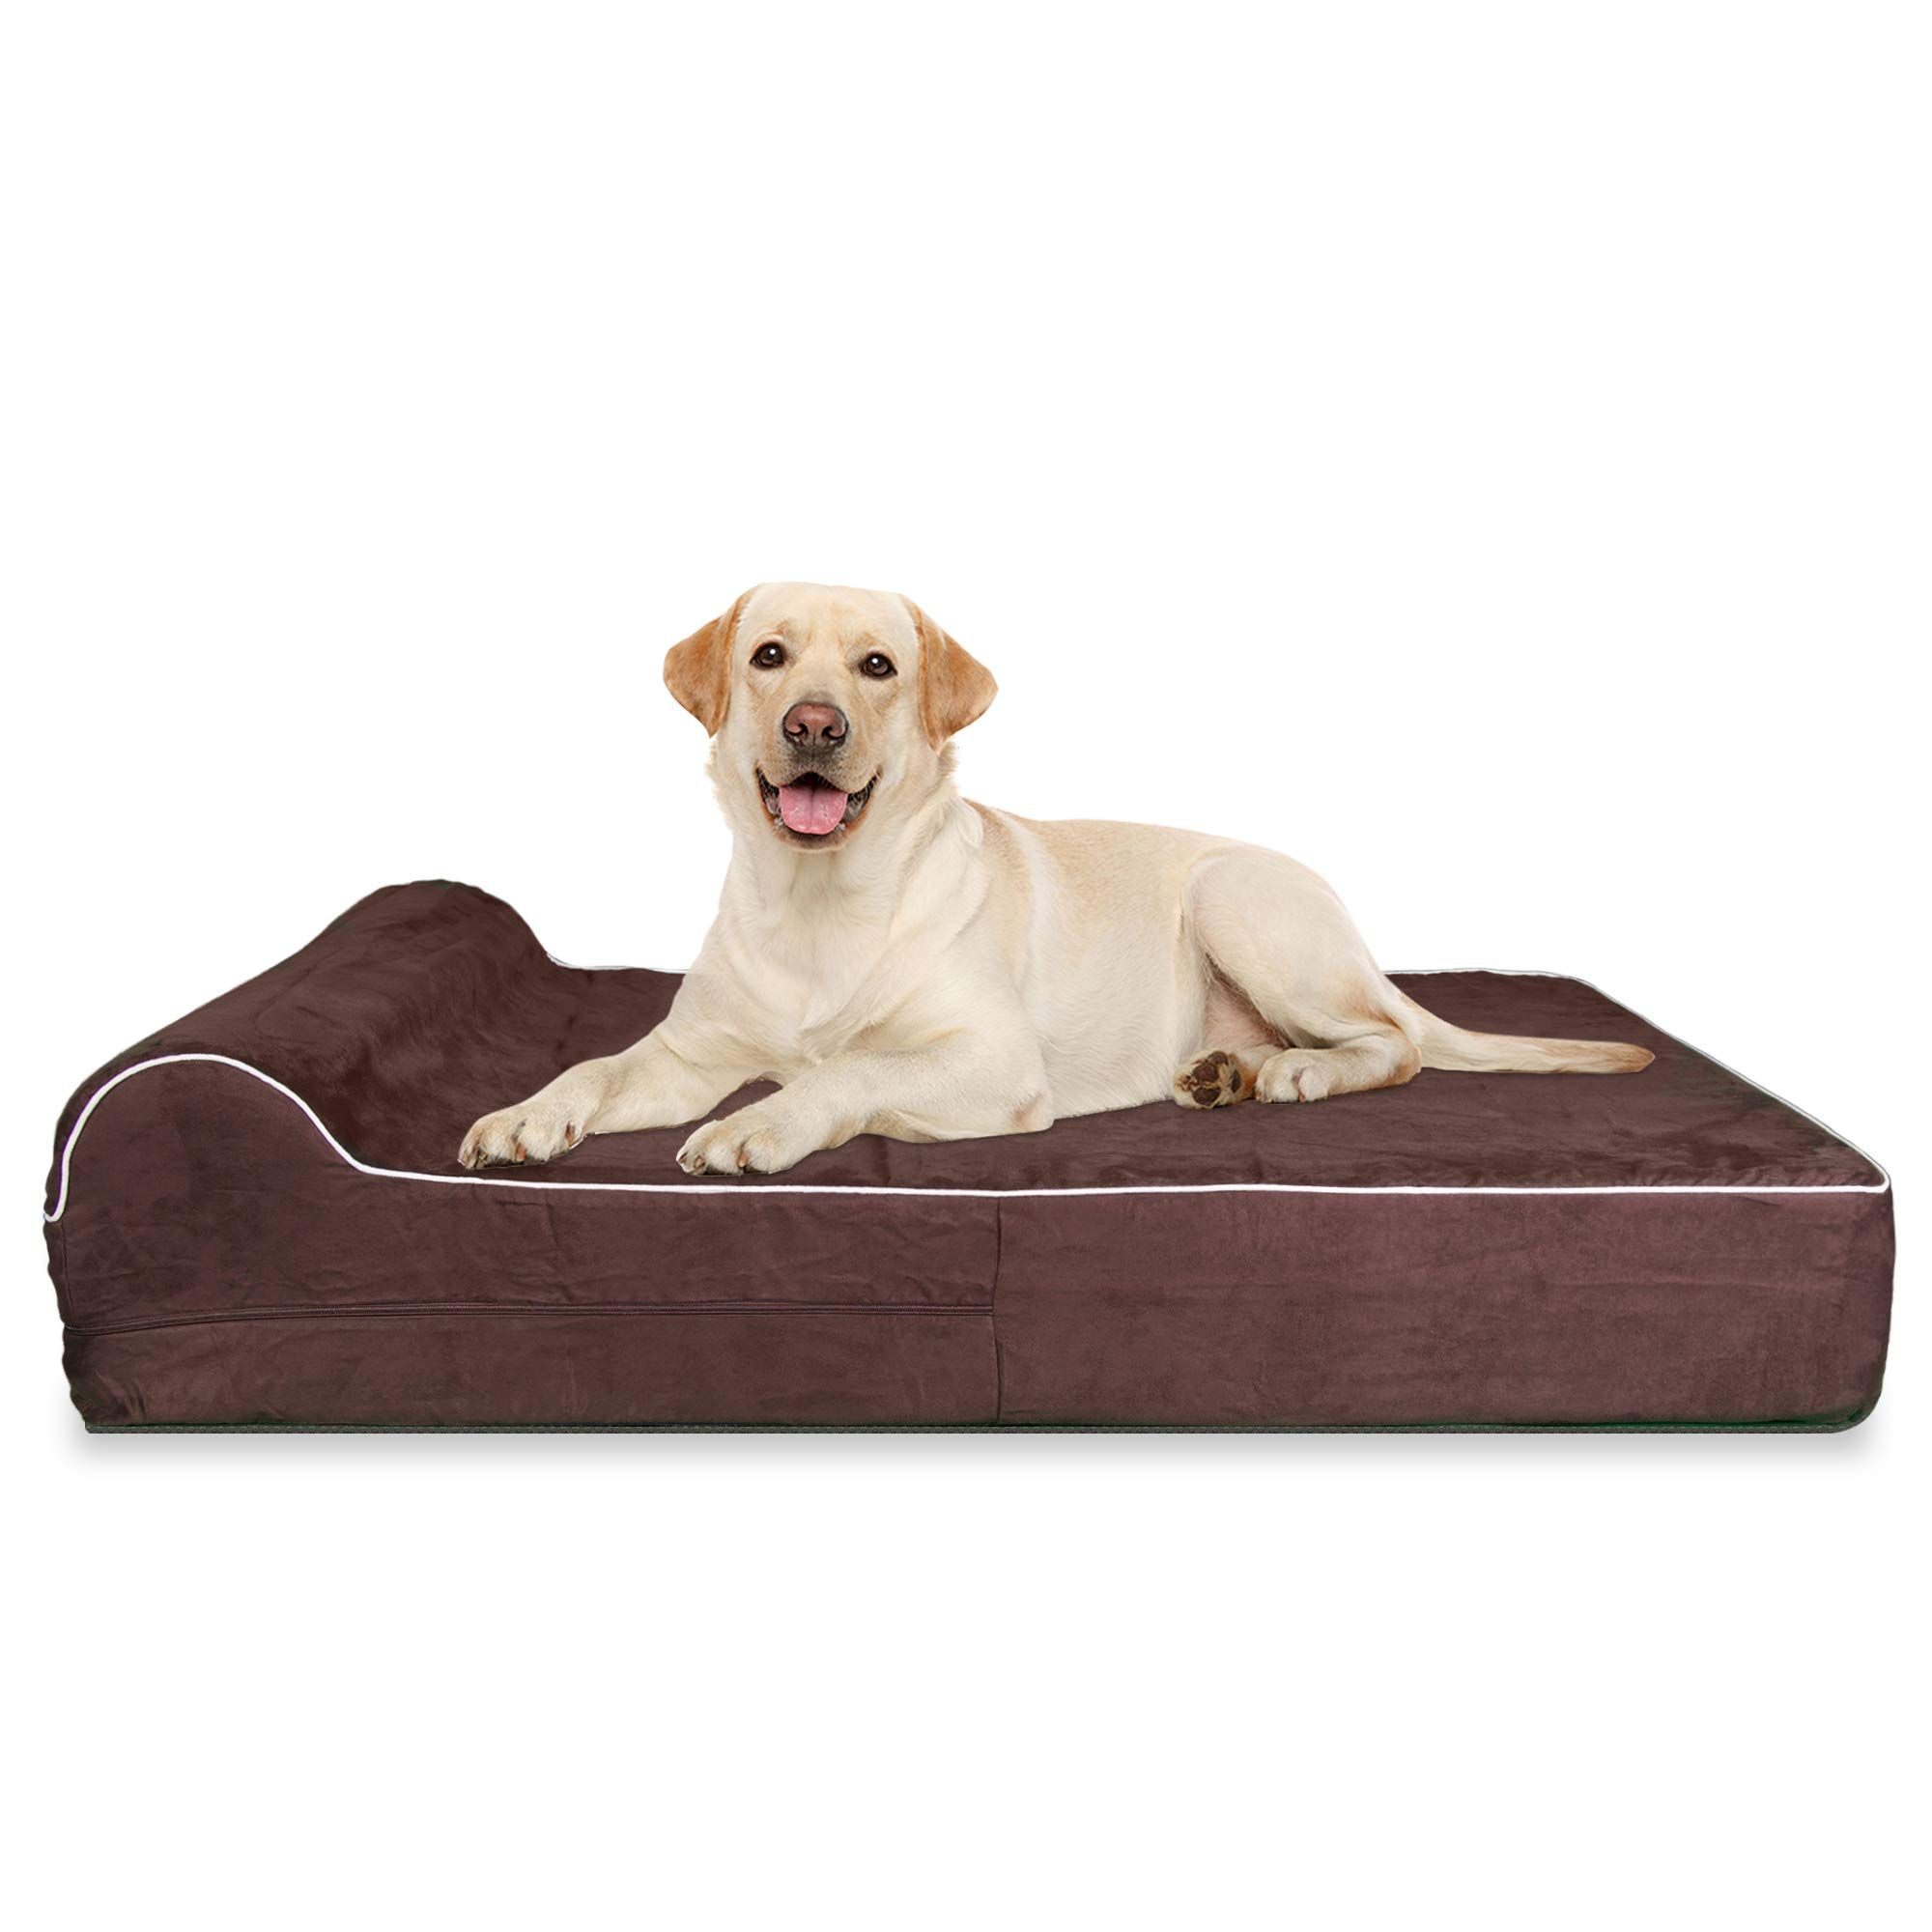 7inch Thick High Grade Orthopedic Memory Foam Dog Bed With